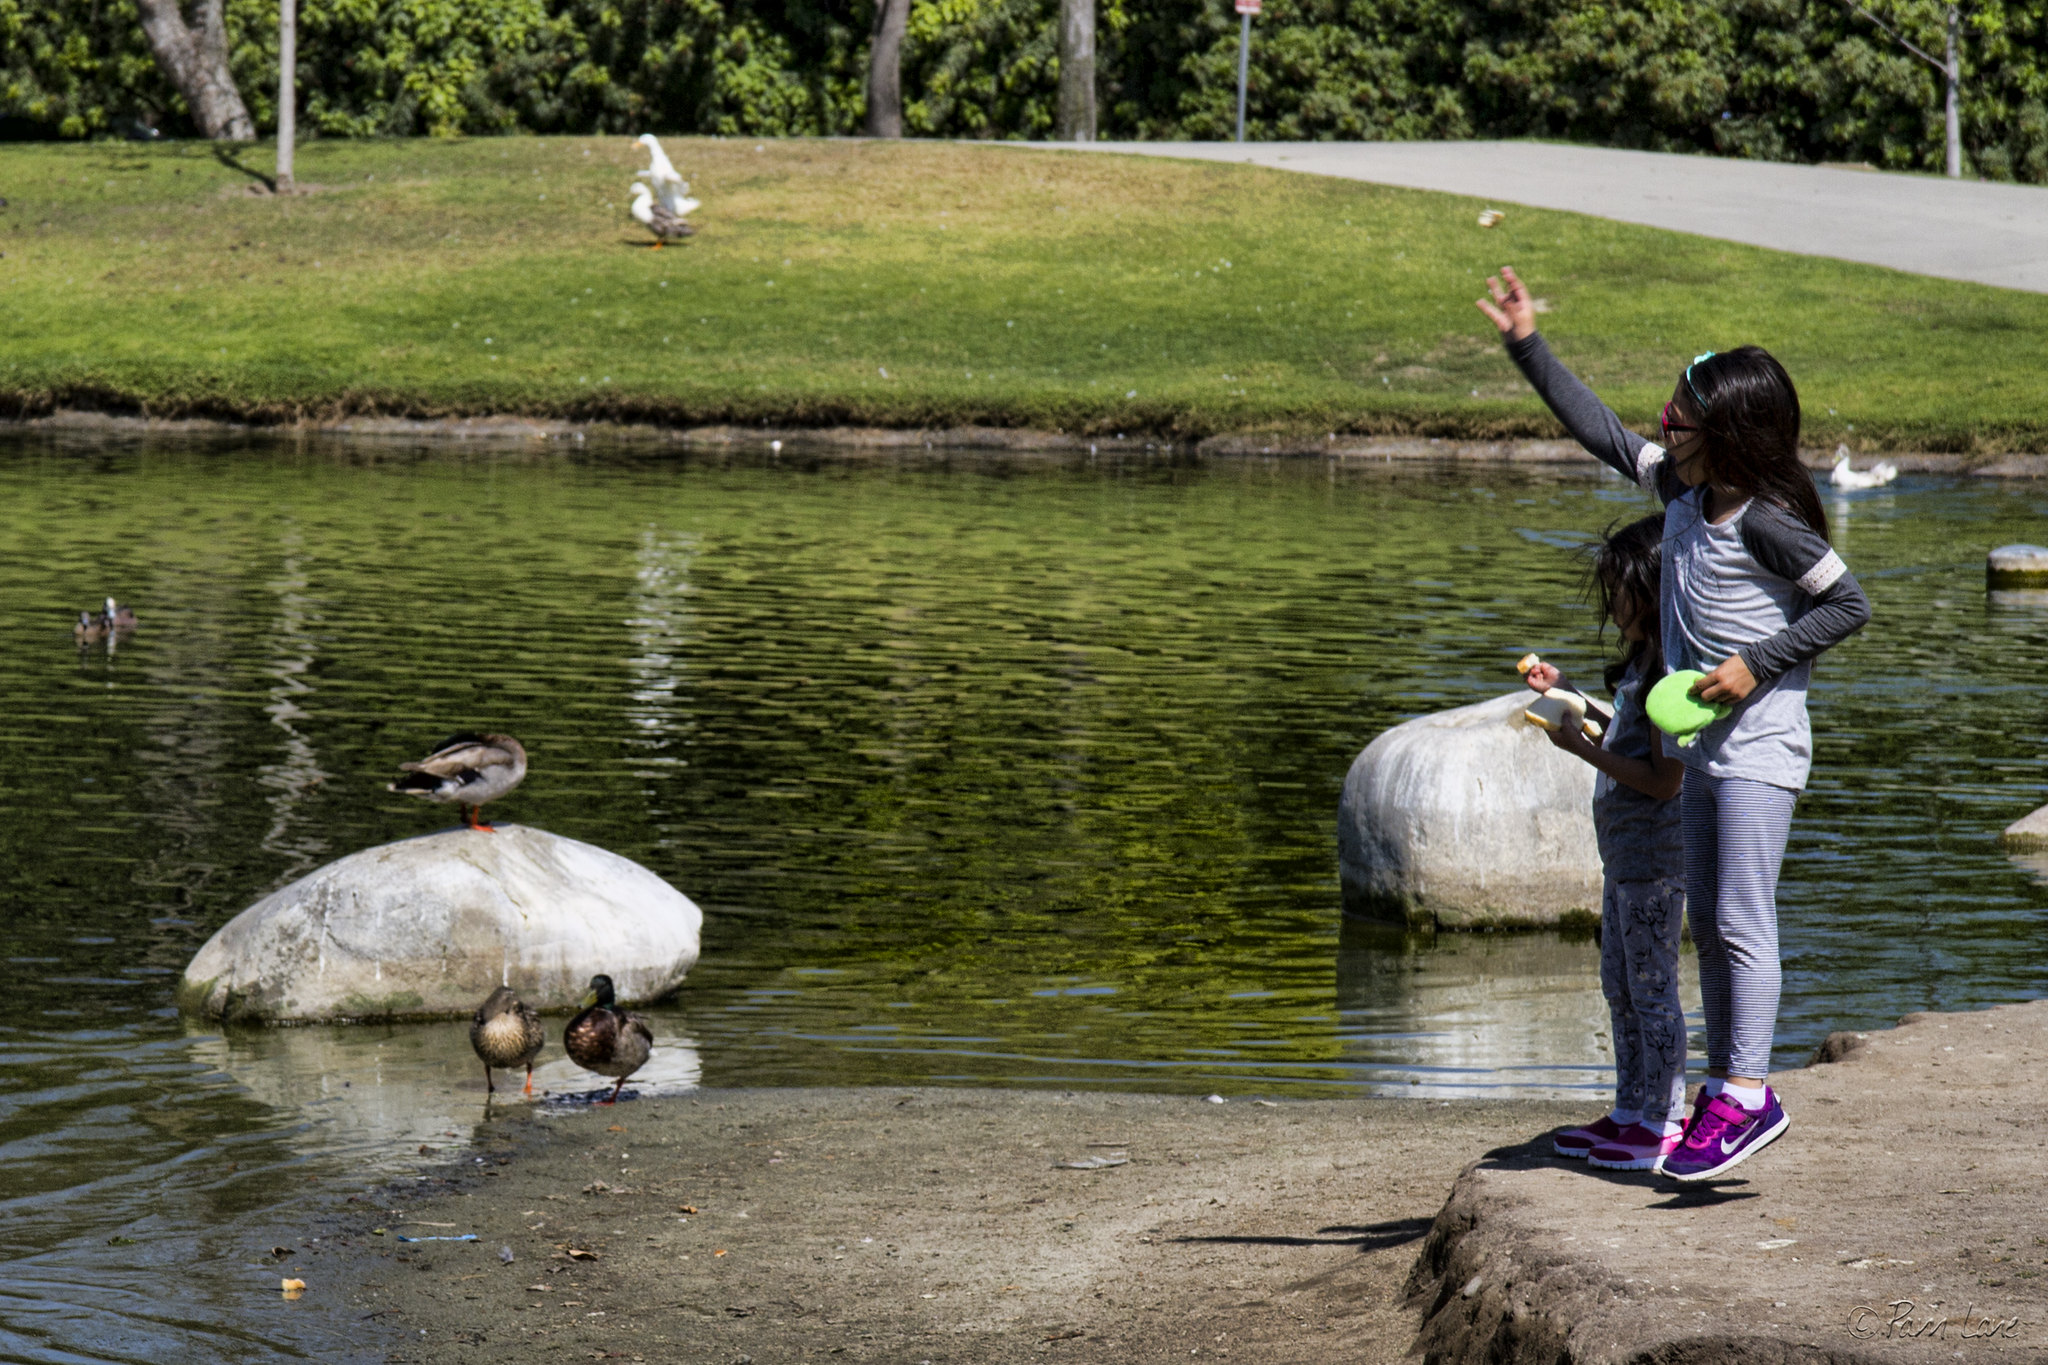 PHOTO BY PAM LANE/DOWNEYDAILYPHOOS.COM   Children feed the ducks at Wilderness Park.